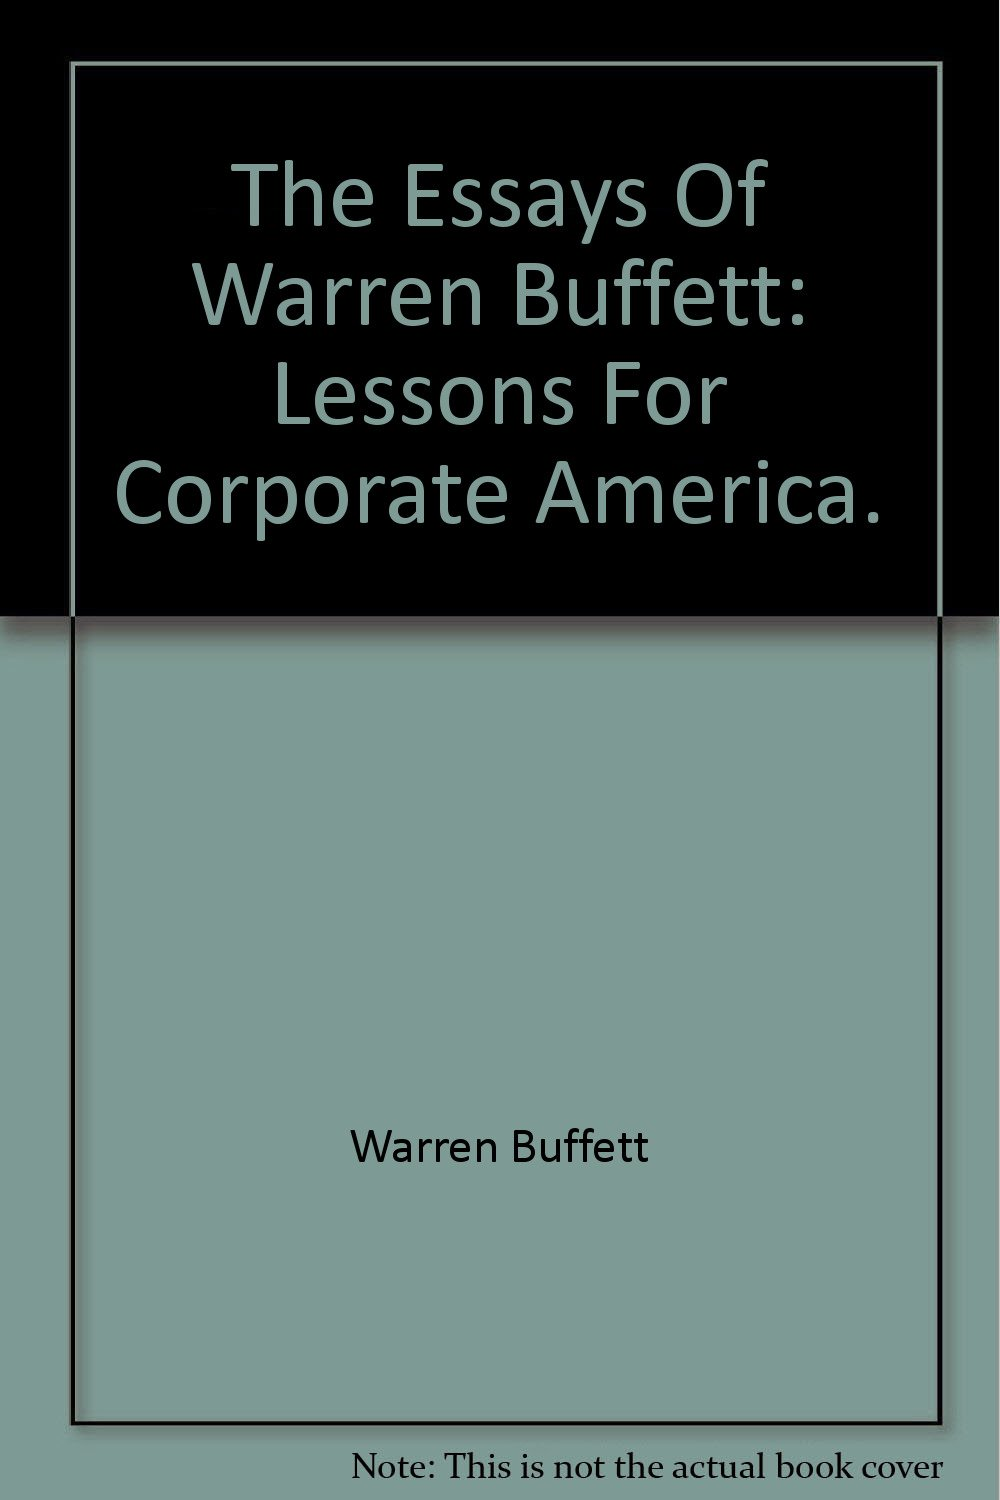 015 61wo12biiixl The Essays Of Warren Buffett Lessons For Investors And Managers Essay Striking 4th Edition Free Pdf Full